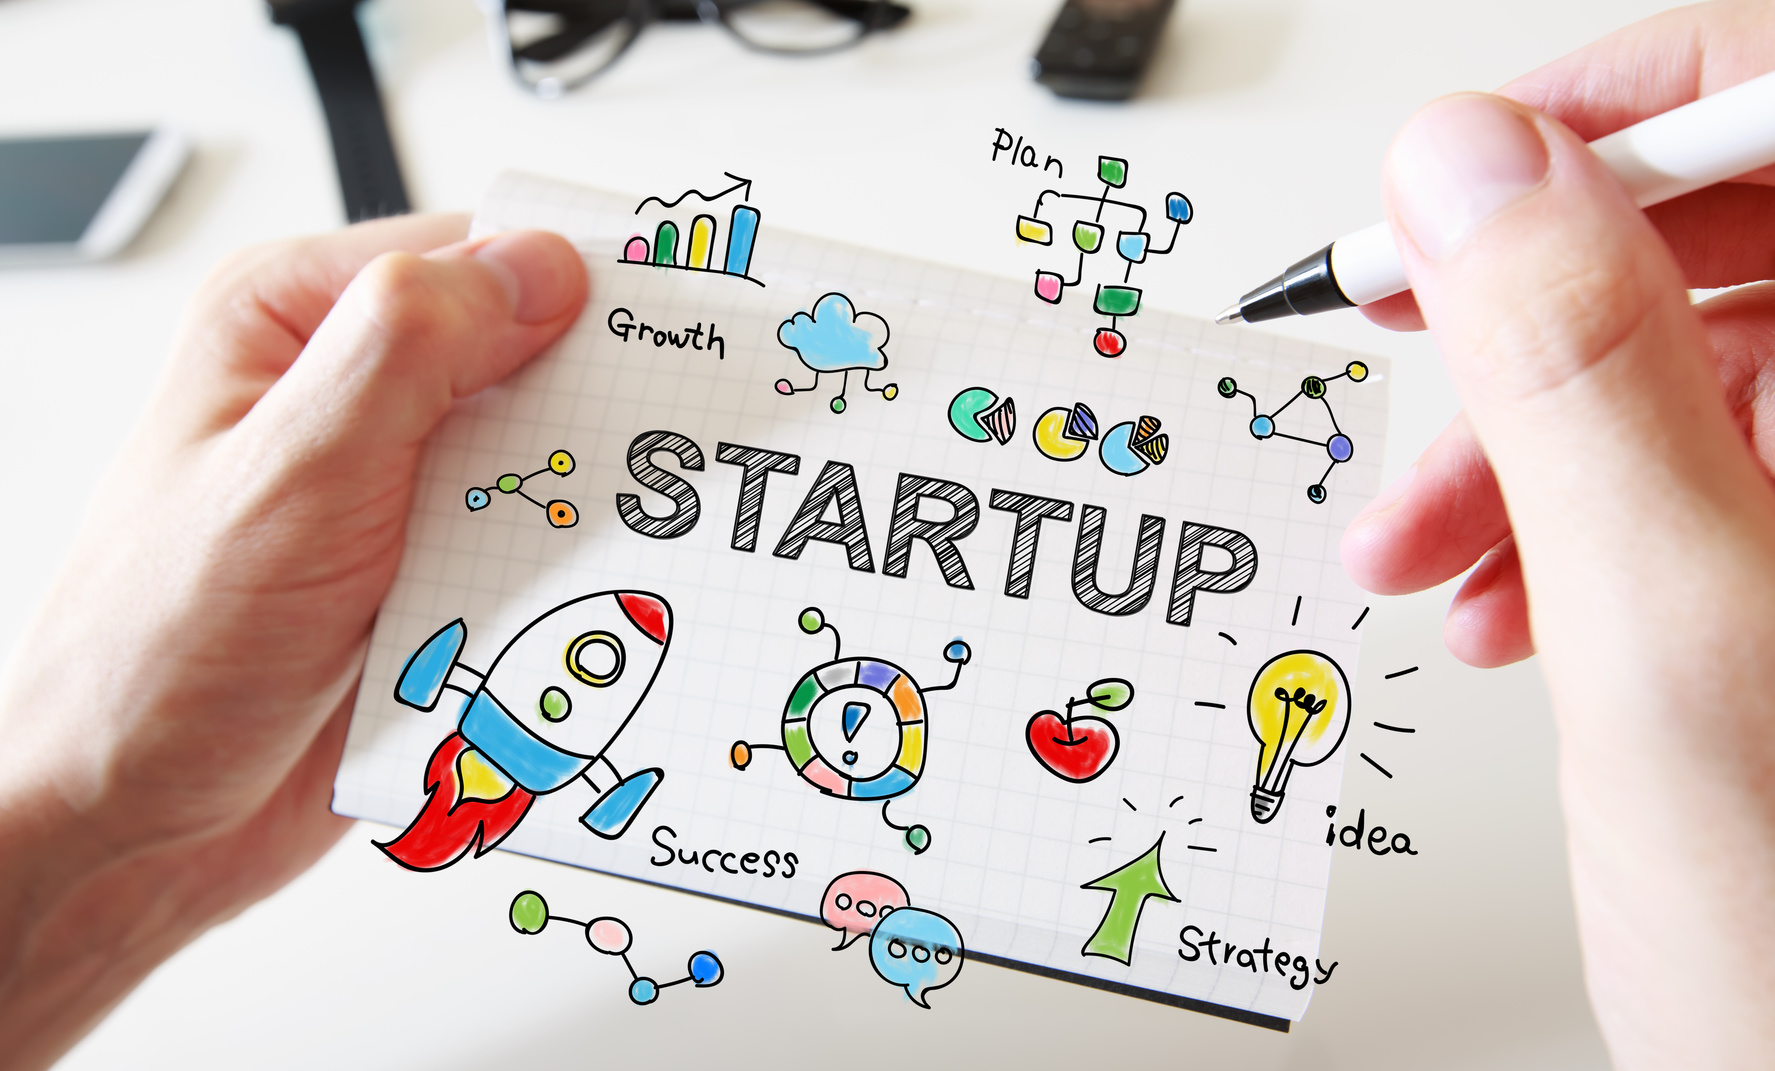 14 Startup Tips From Small Business Pros: Time-Tested Small Business Advice  | AllBusiness.com